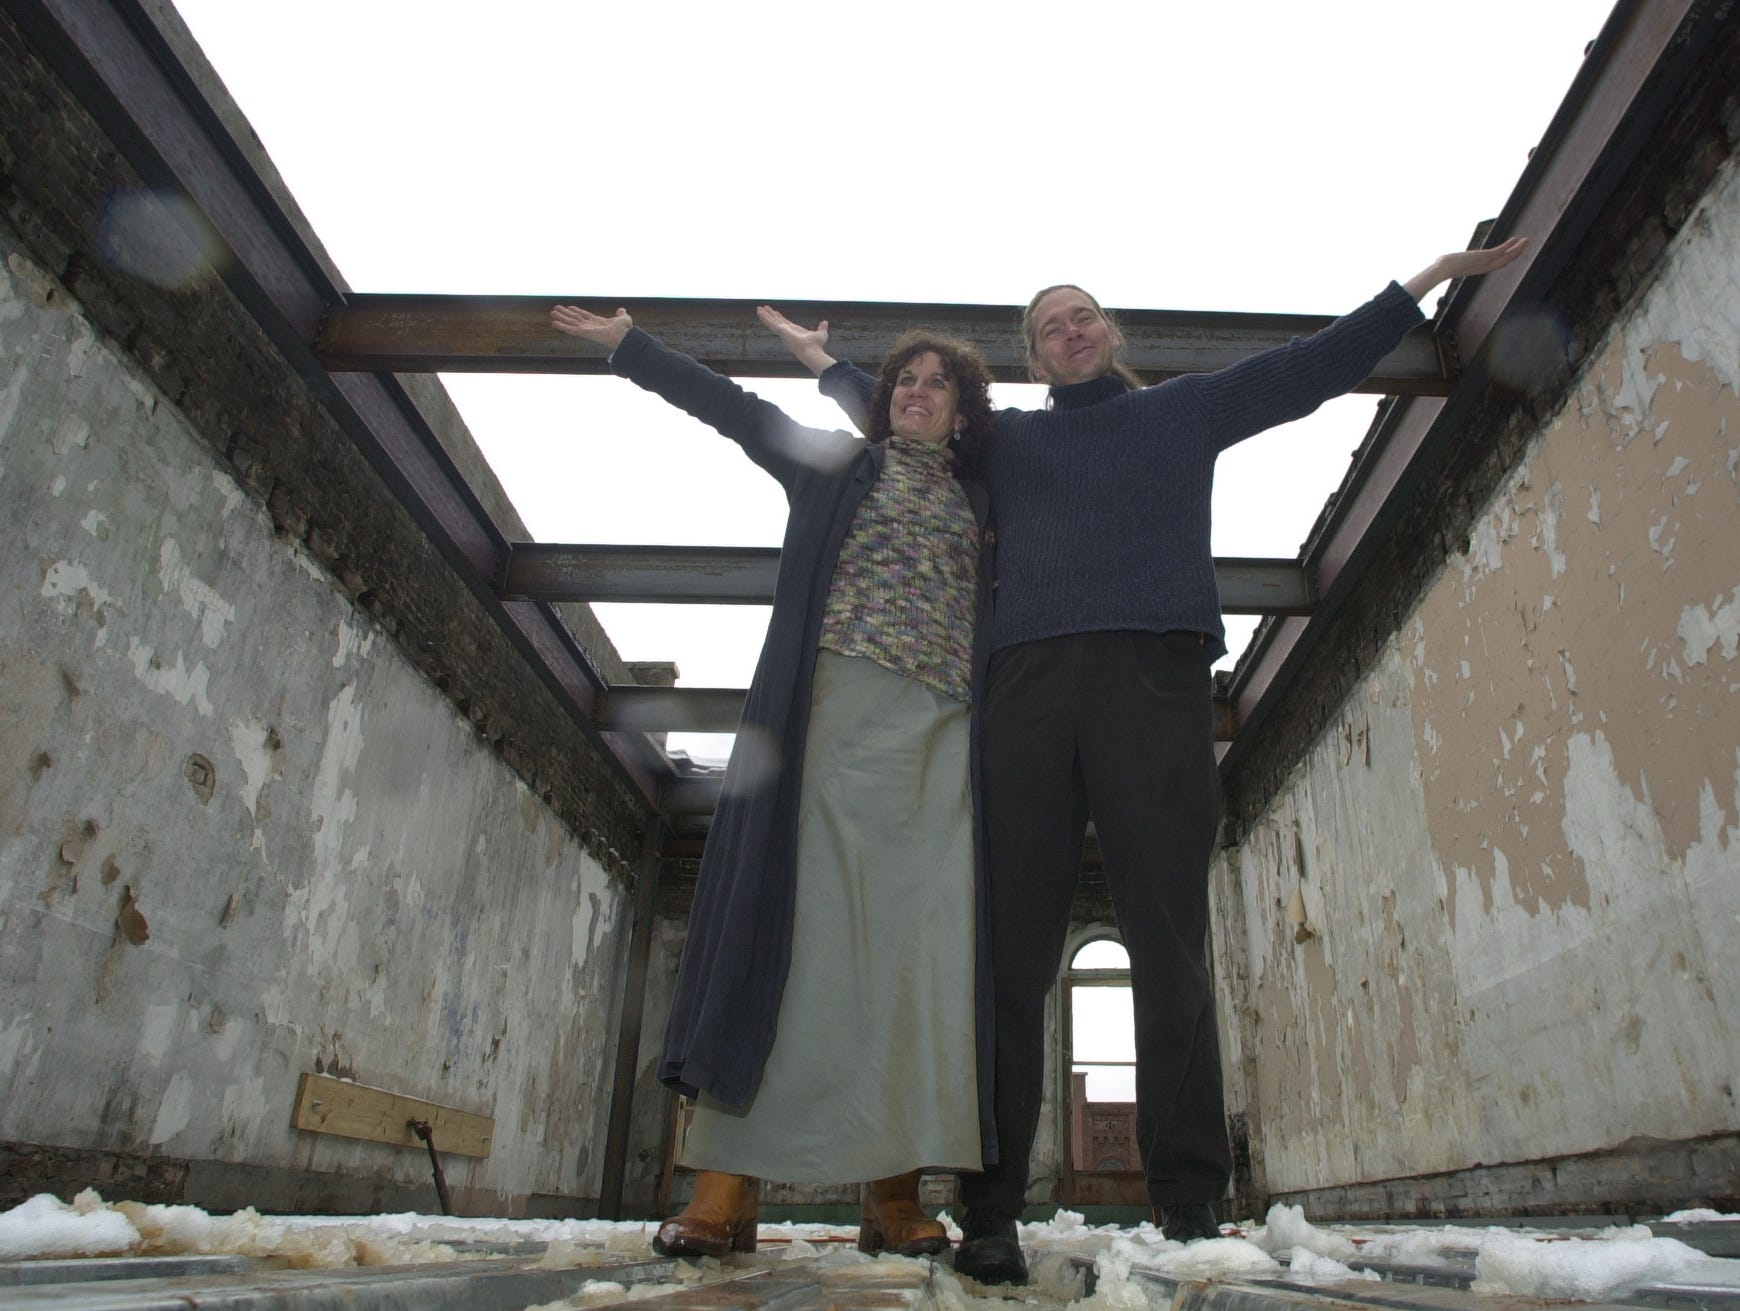 Earth to Old City and Preservation Pub owners Scott and Bernadette West pause in the upper story of one of their new properties Monday at Market Square. The couple, along with Bernadette West's mother, Rosemarie Trent, are now the largest single property owners on Market Square. 